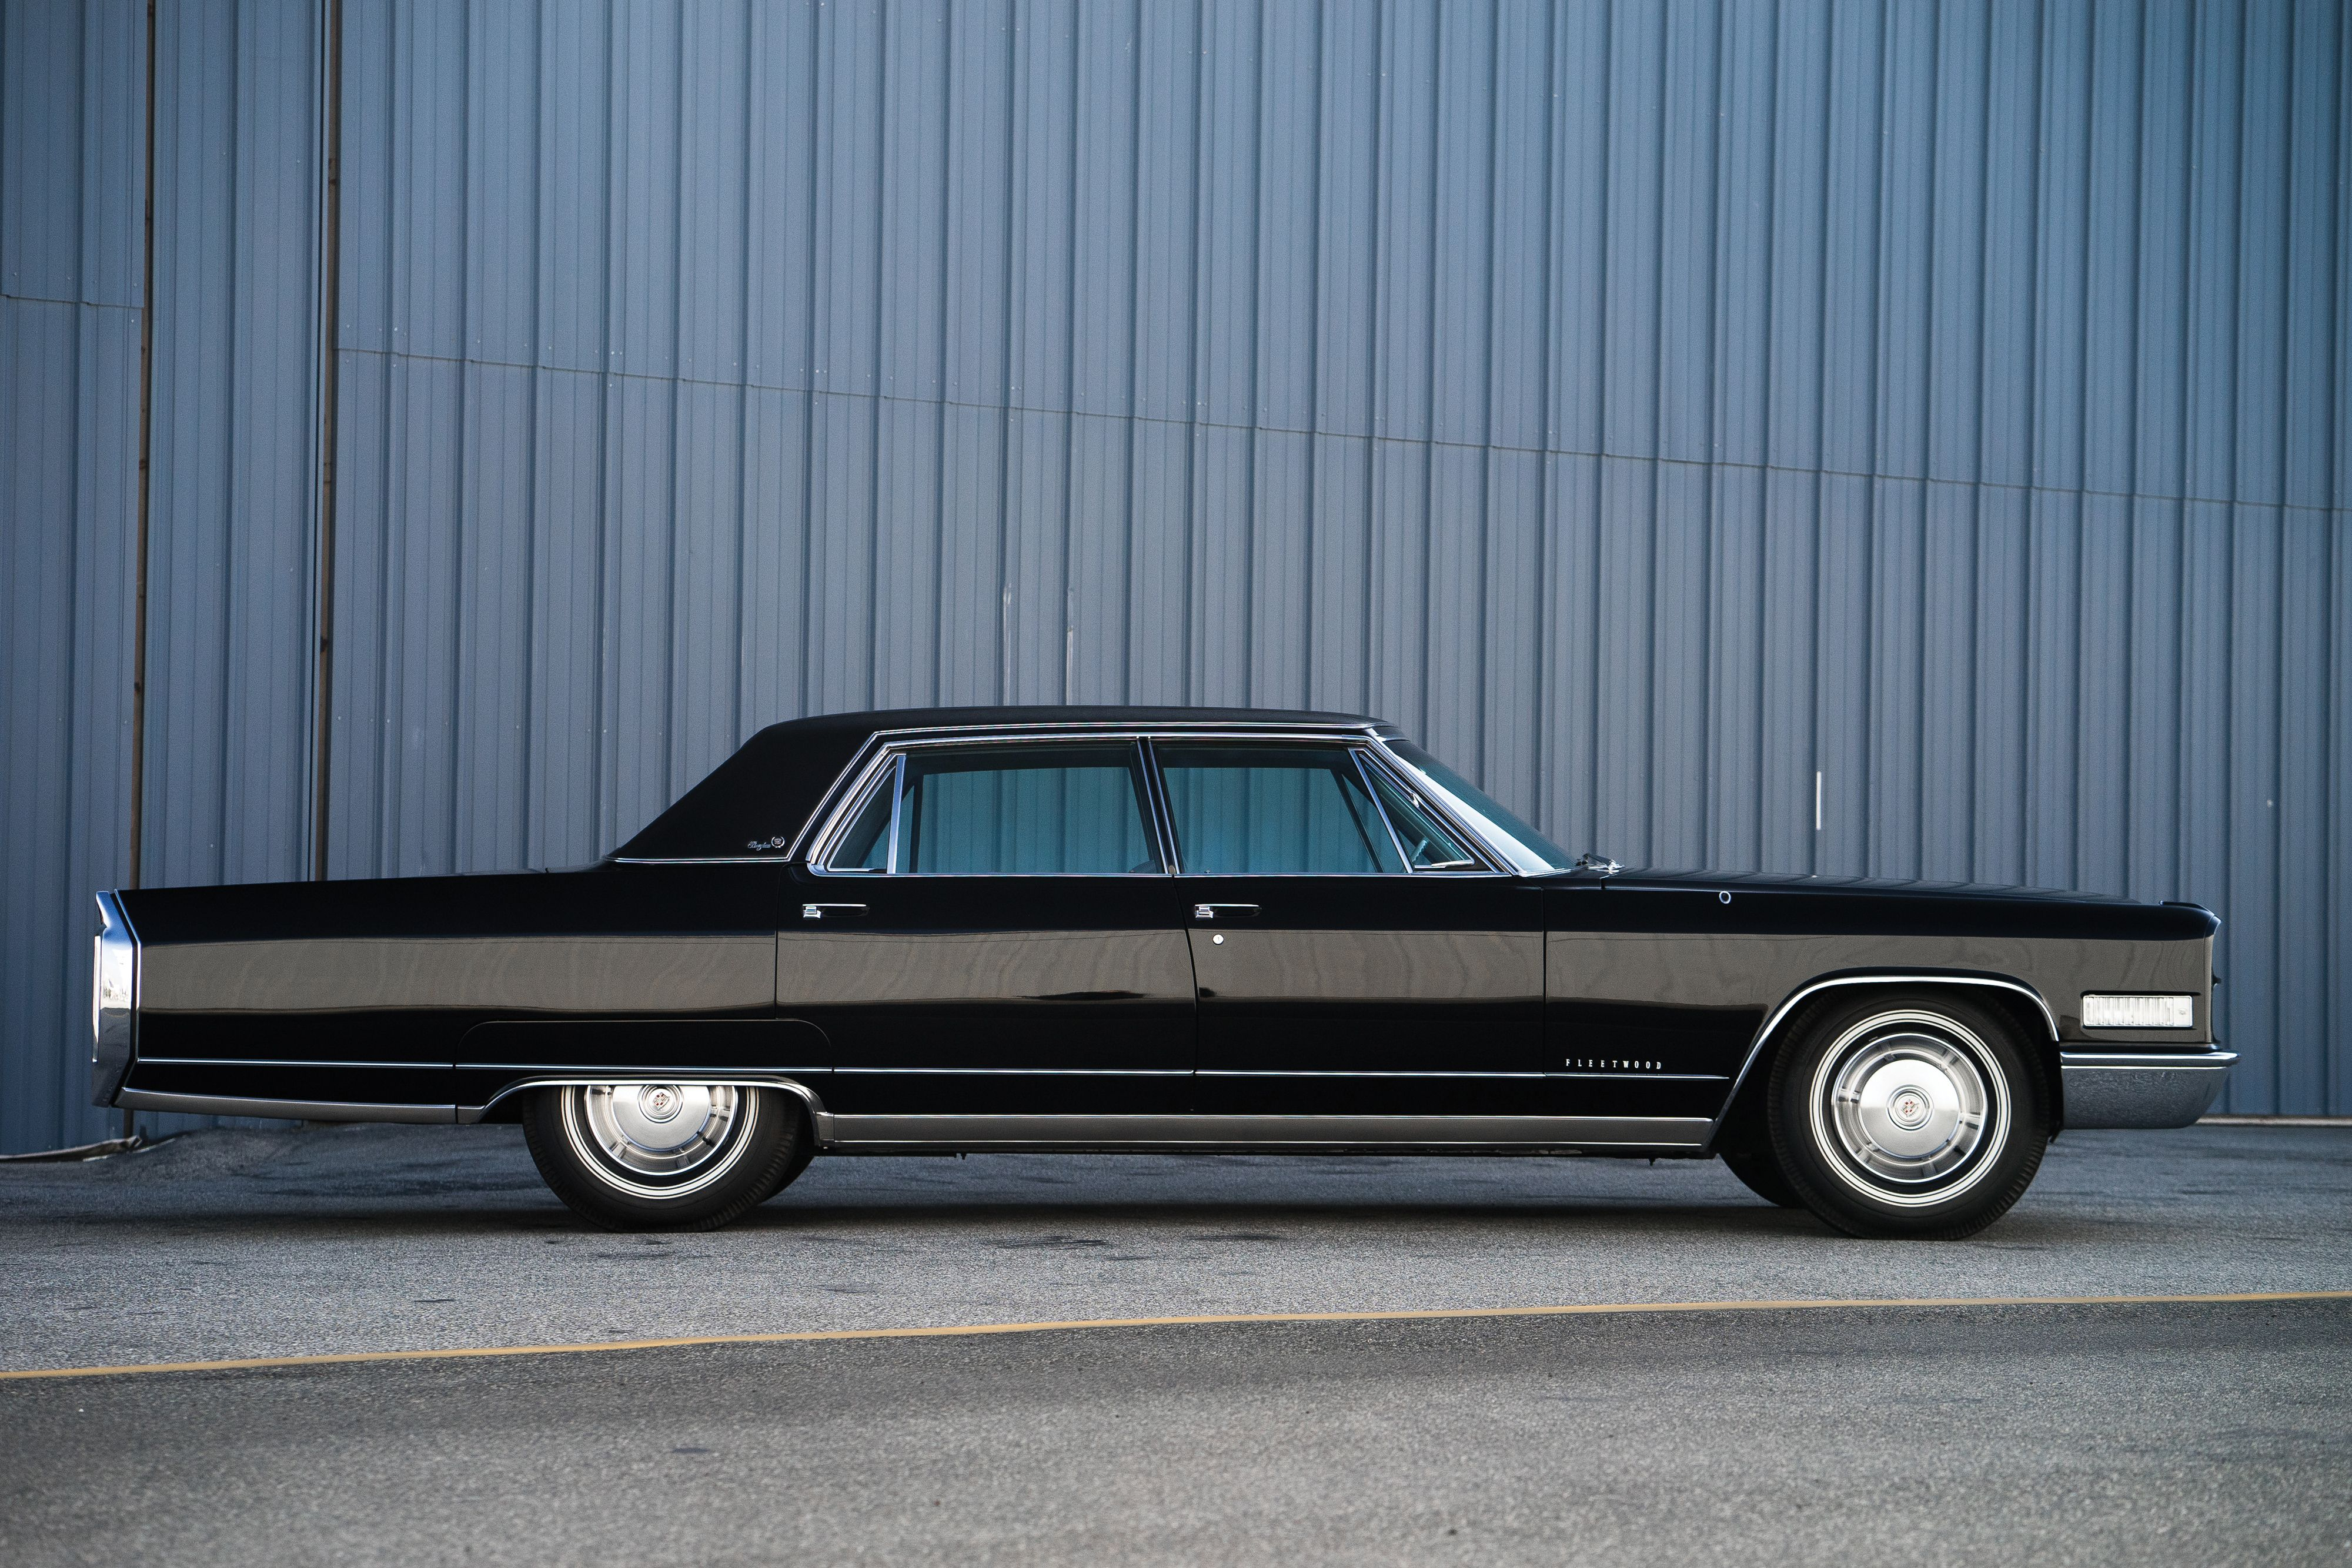 Image result for 1966 cadillac fleetwood 60 special brougham | NEED